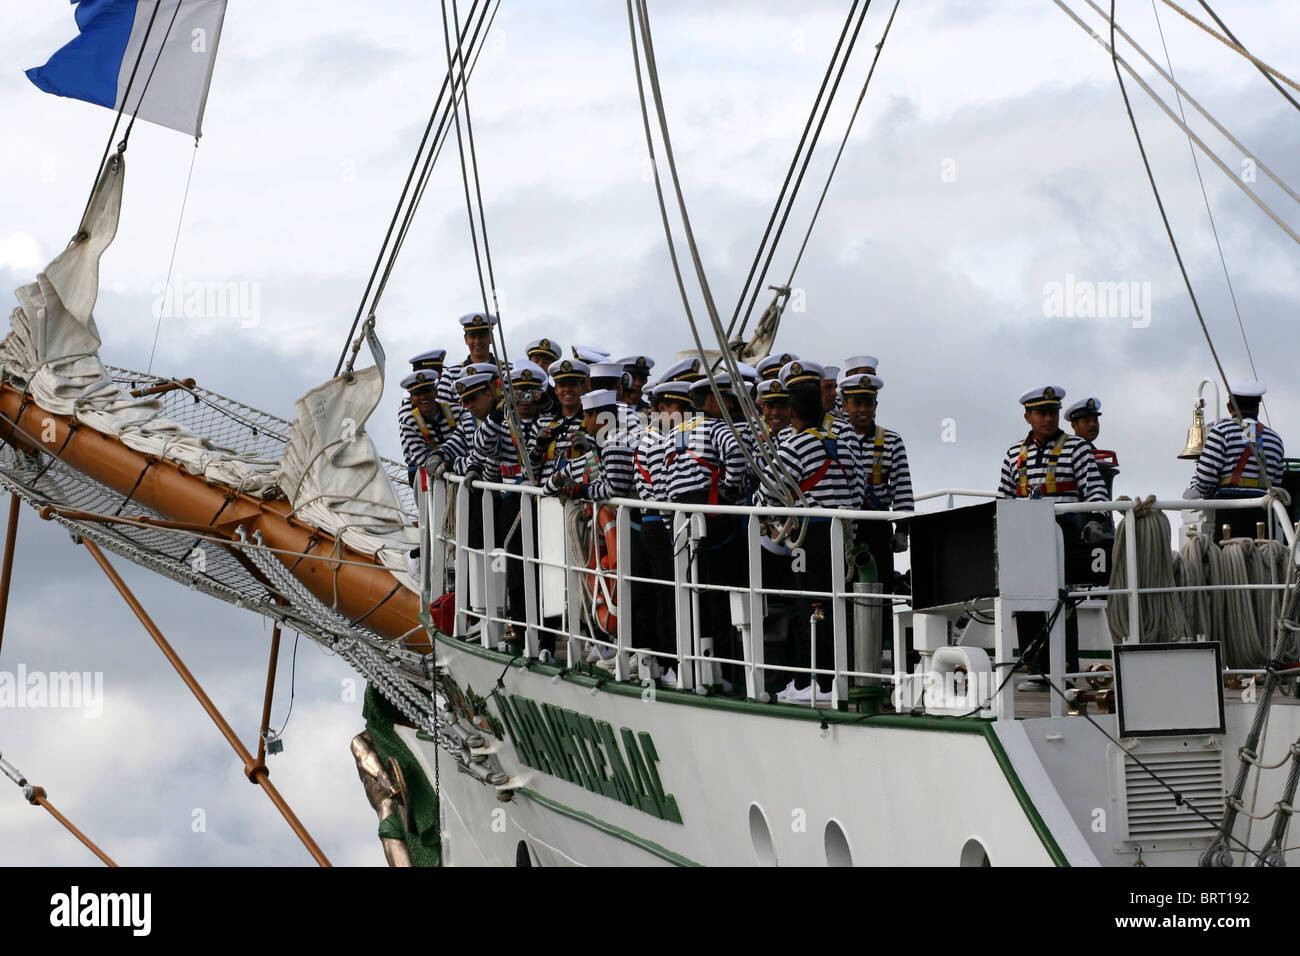 Cuauhtemoc,The Tall Ships Races 2008, Bergen - Stock Image